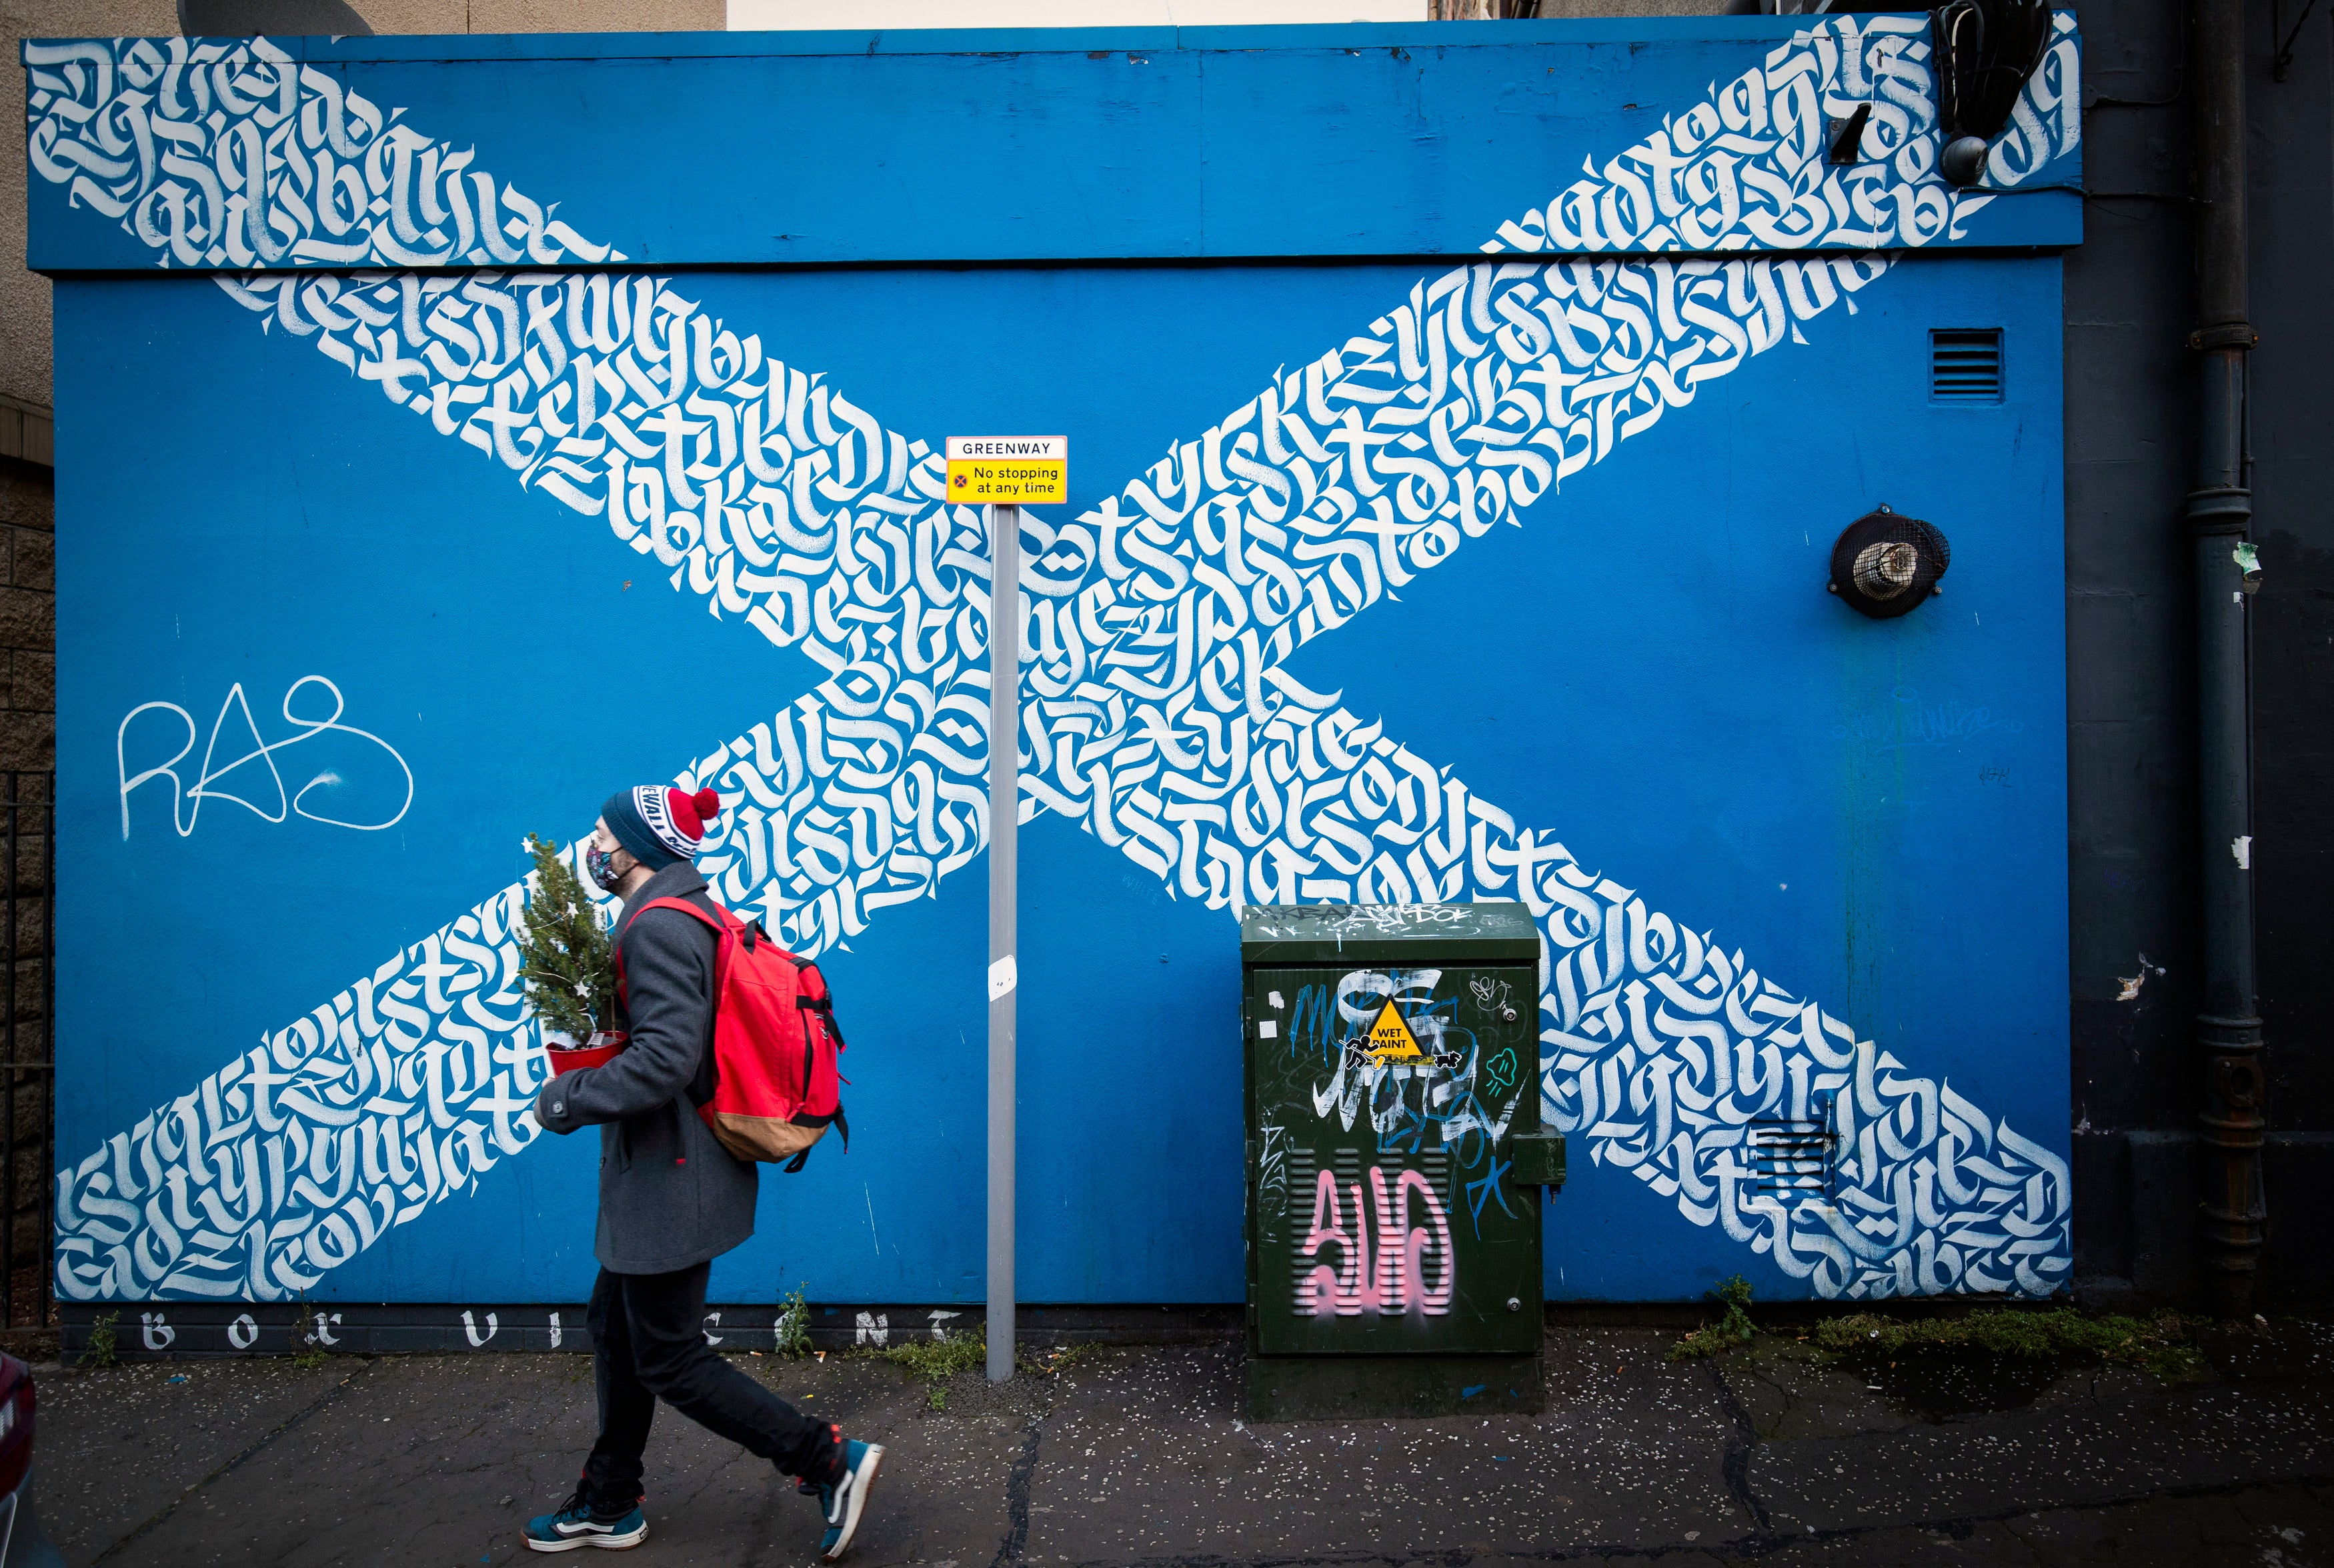 Most Britons think Scotland will be independent within a decade, poll finds